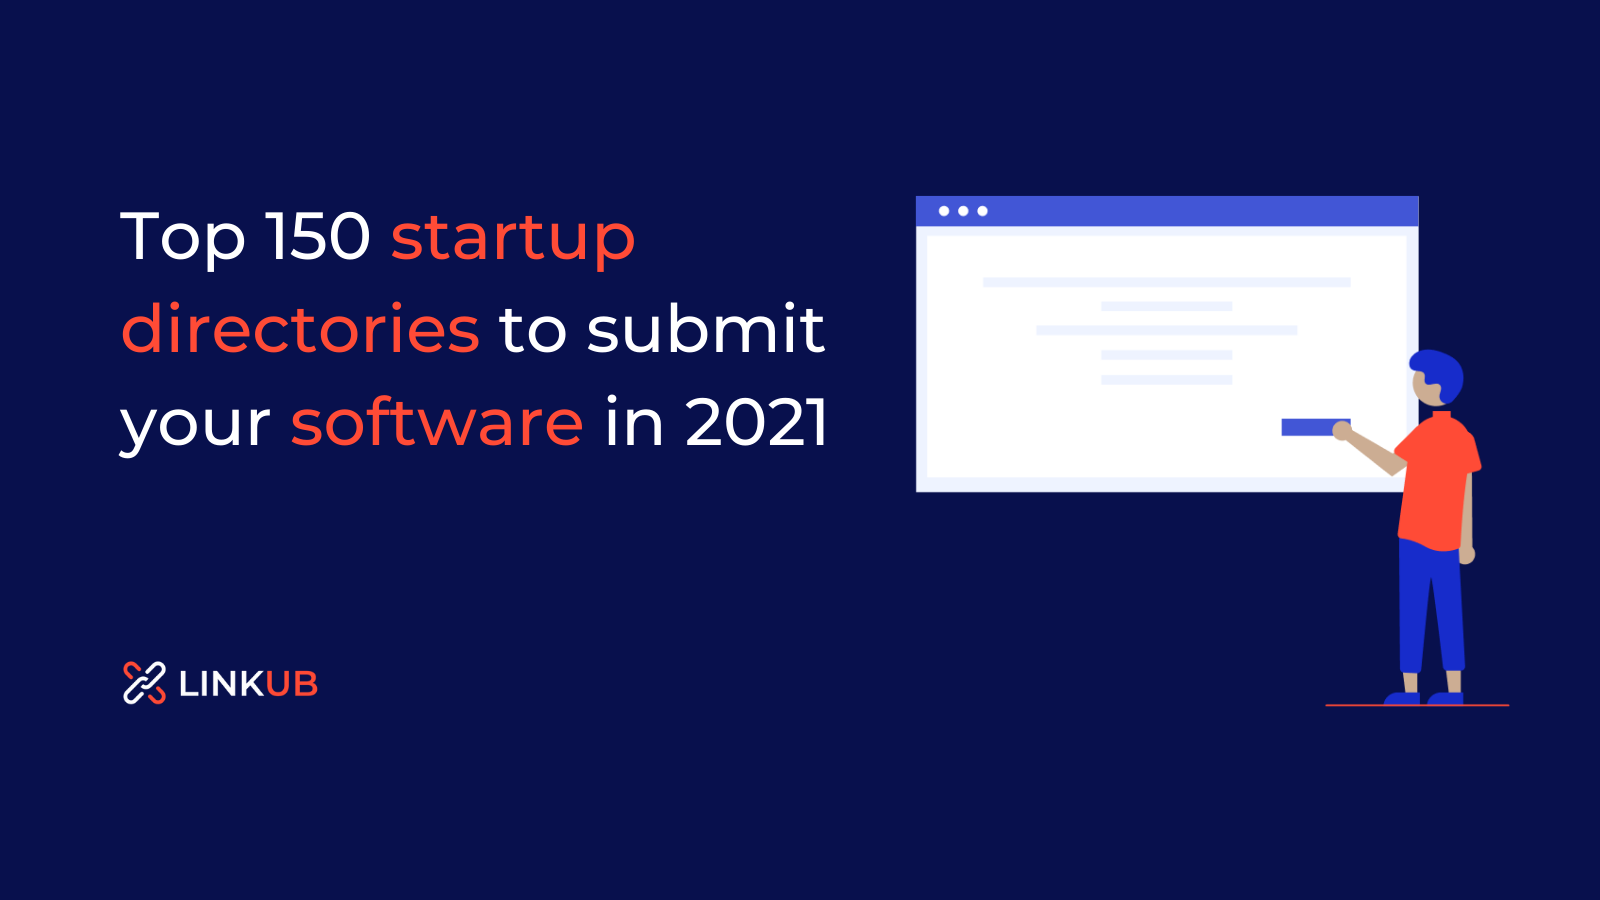 Top 150 startup directories to submit your software in 2021